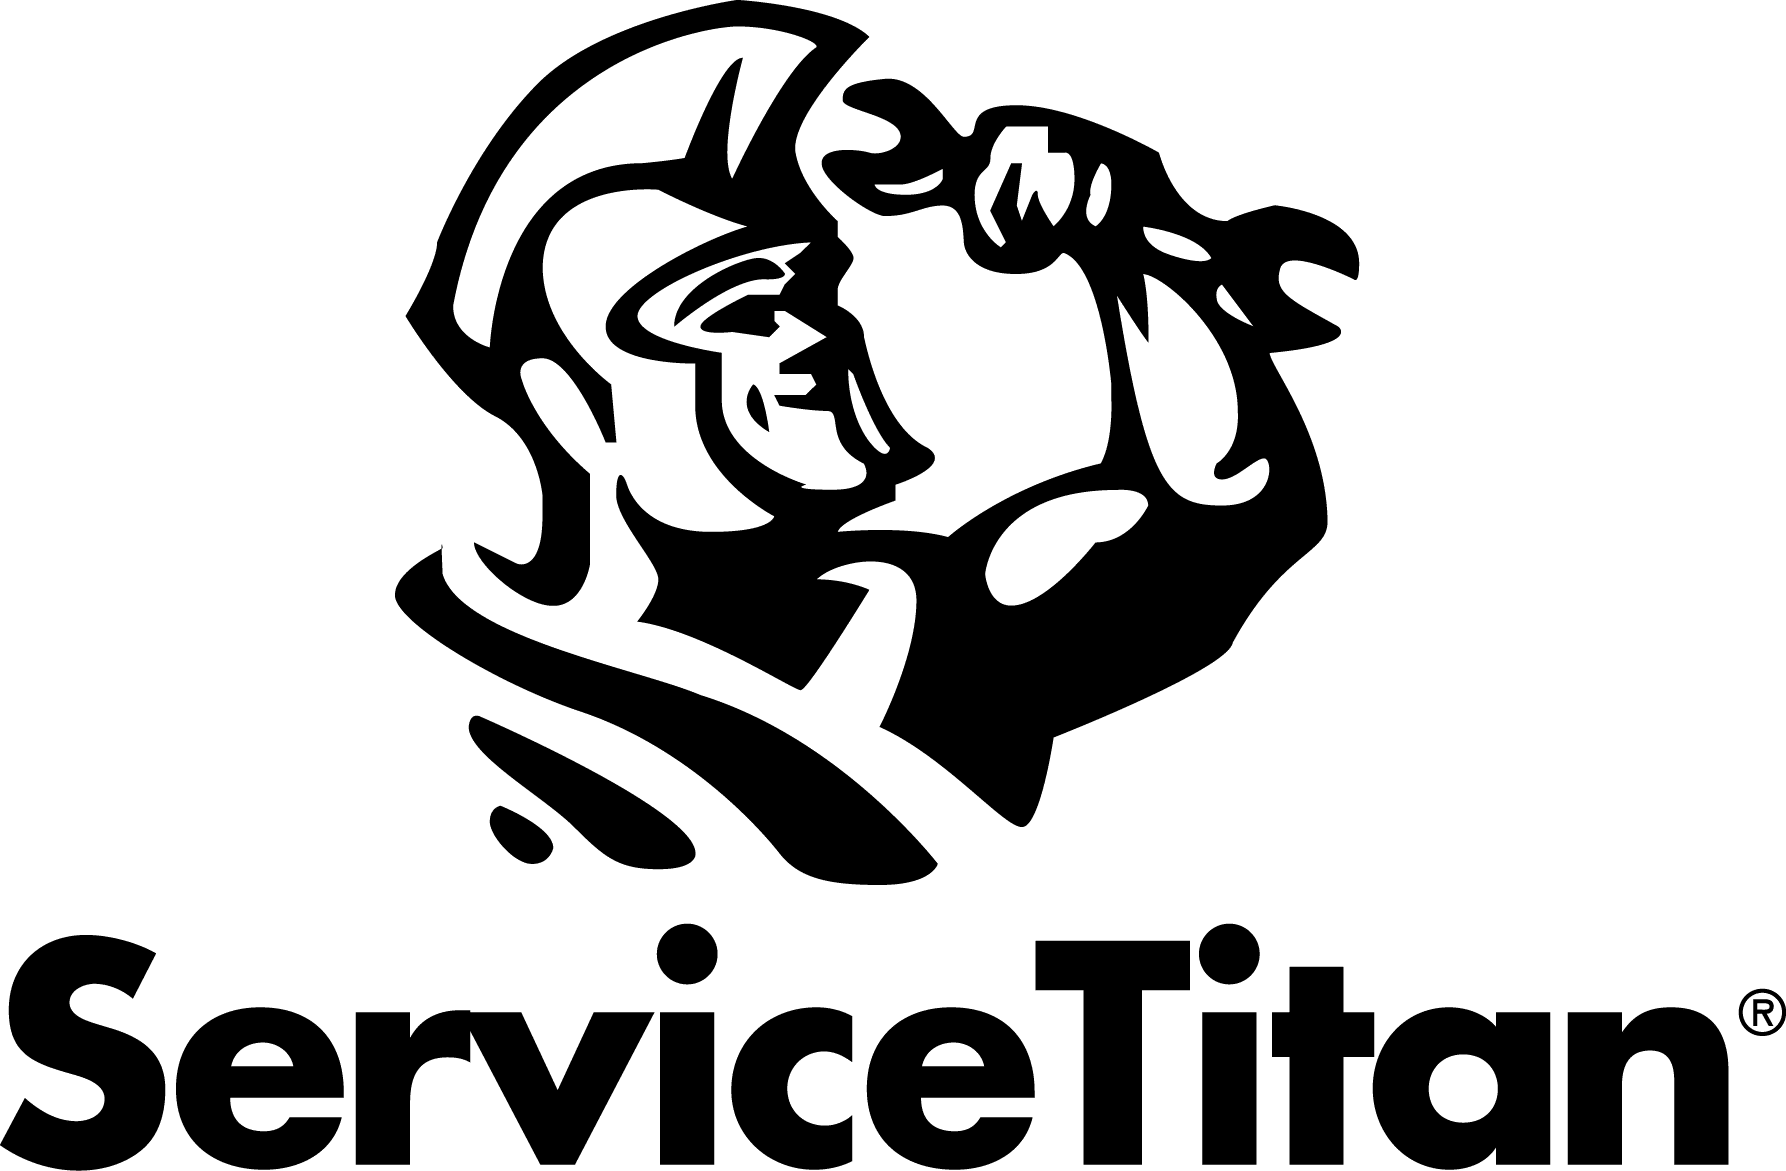 ServiceTitan - Field Service Management Software : SaaSworthy.com